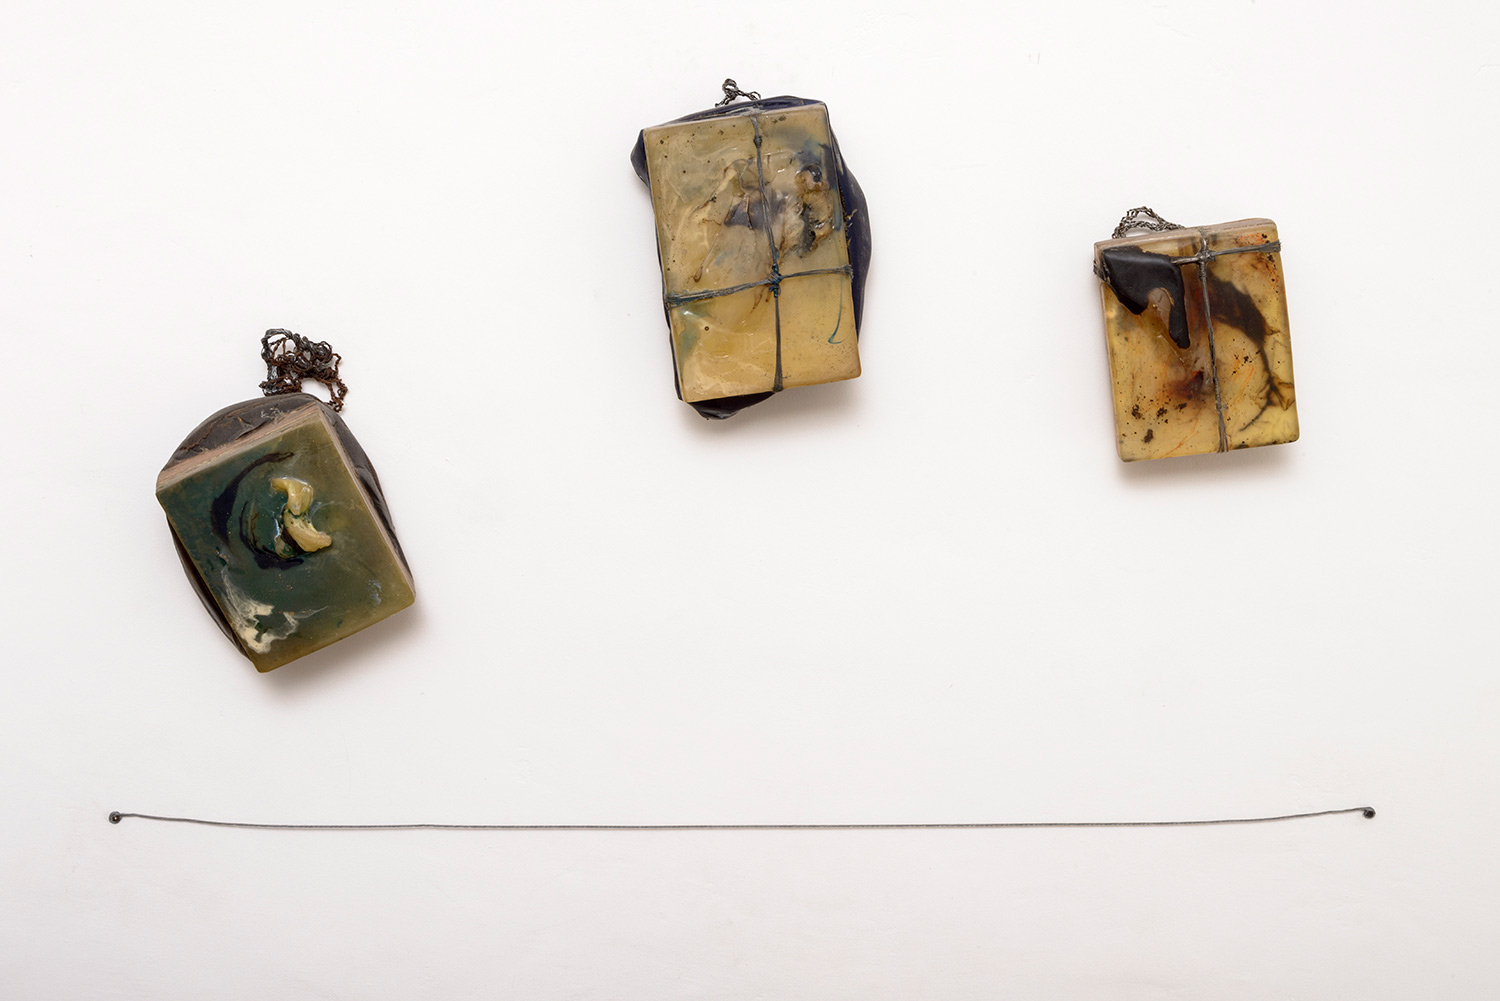 Rigor, Prey Tell, Pipe Dreams, Resin, oil and wire on Panel, 2014